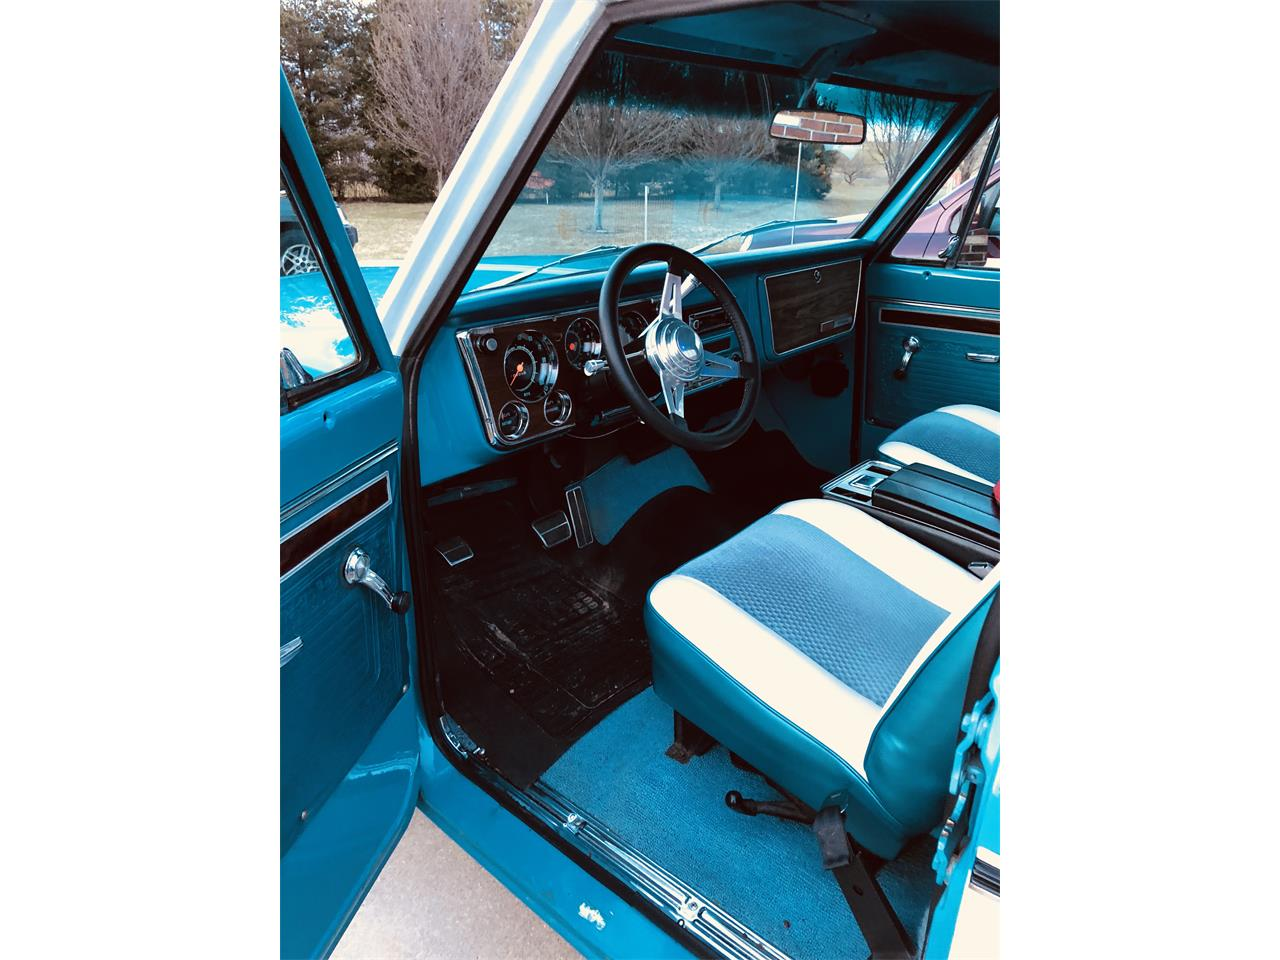 Large Picture of 1971 Chevrolet C10 located in Canandaigua New York Offered by a Private Seller - PZ98